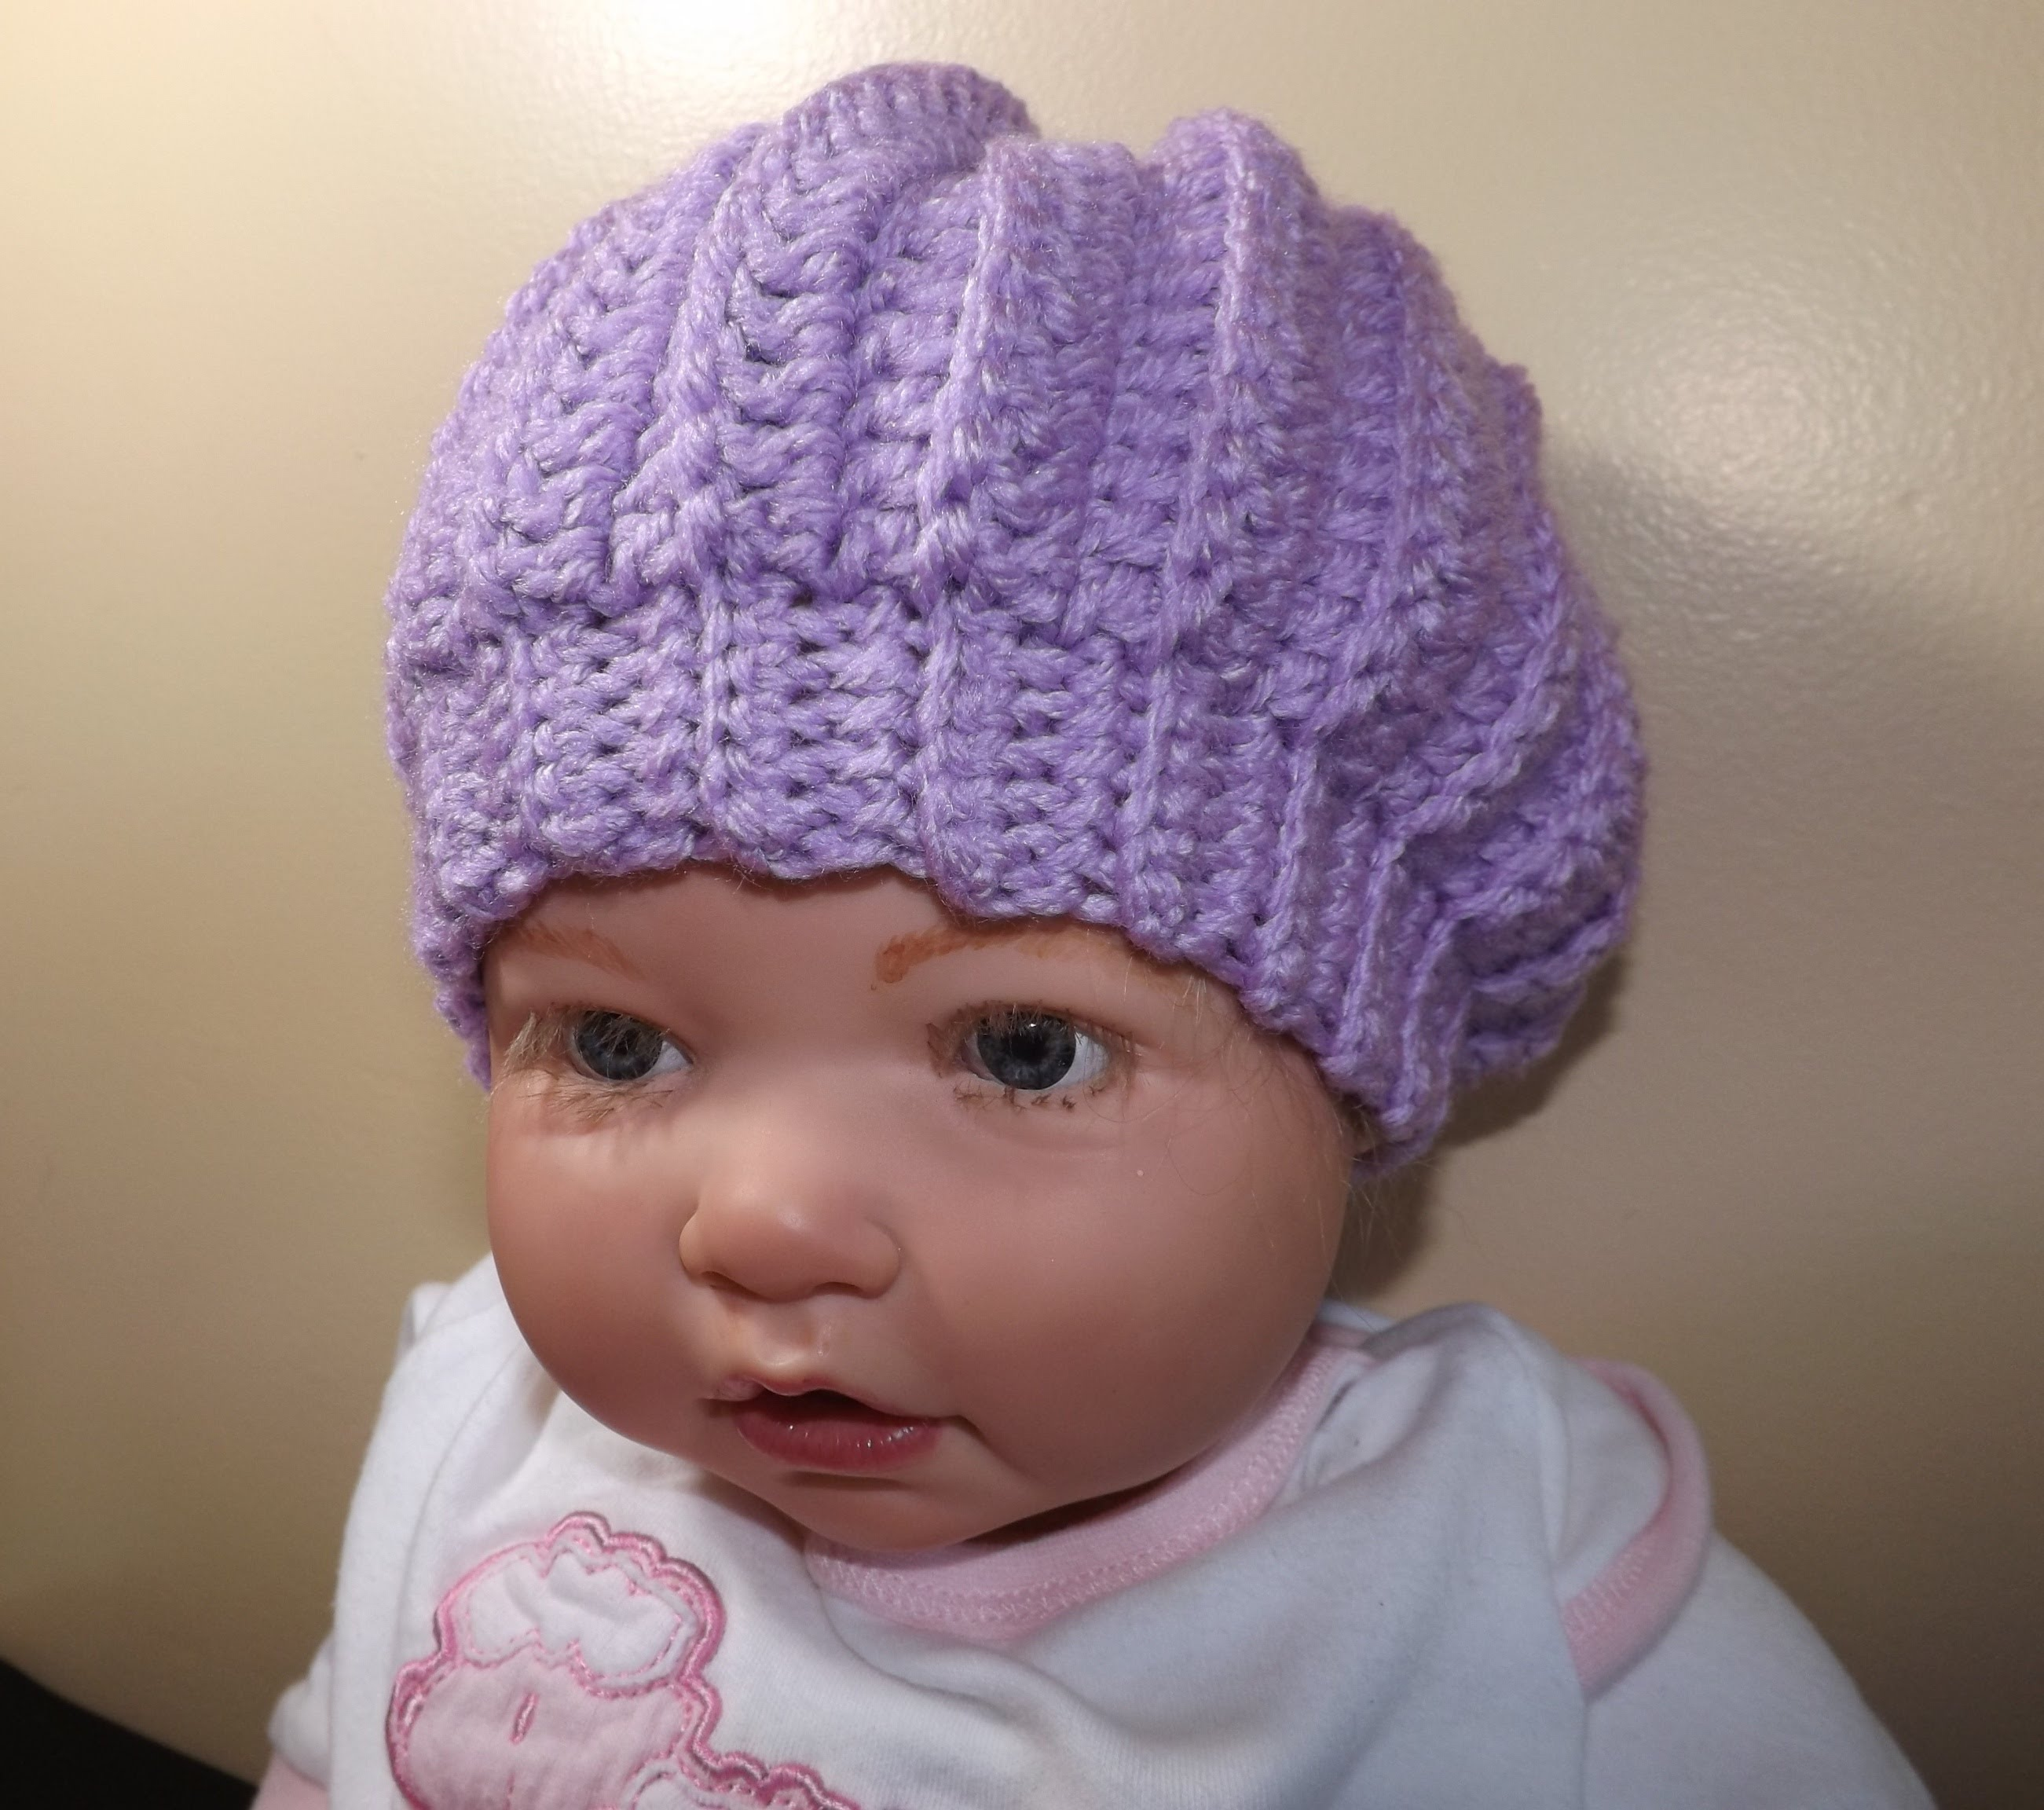 Crochet Baby Hats Perfect for Holiday Gifts